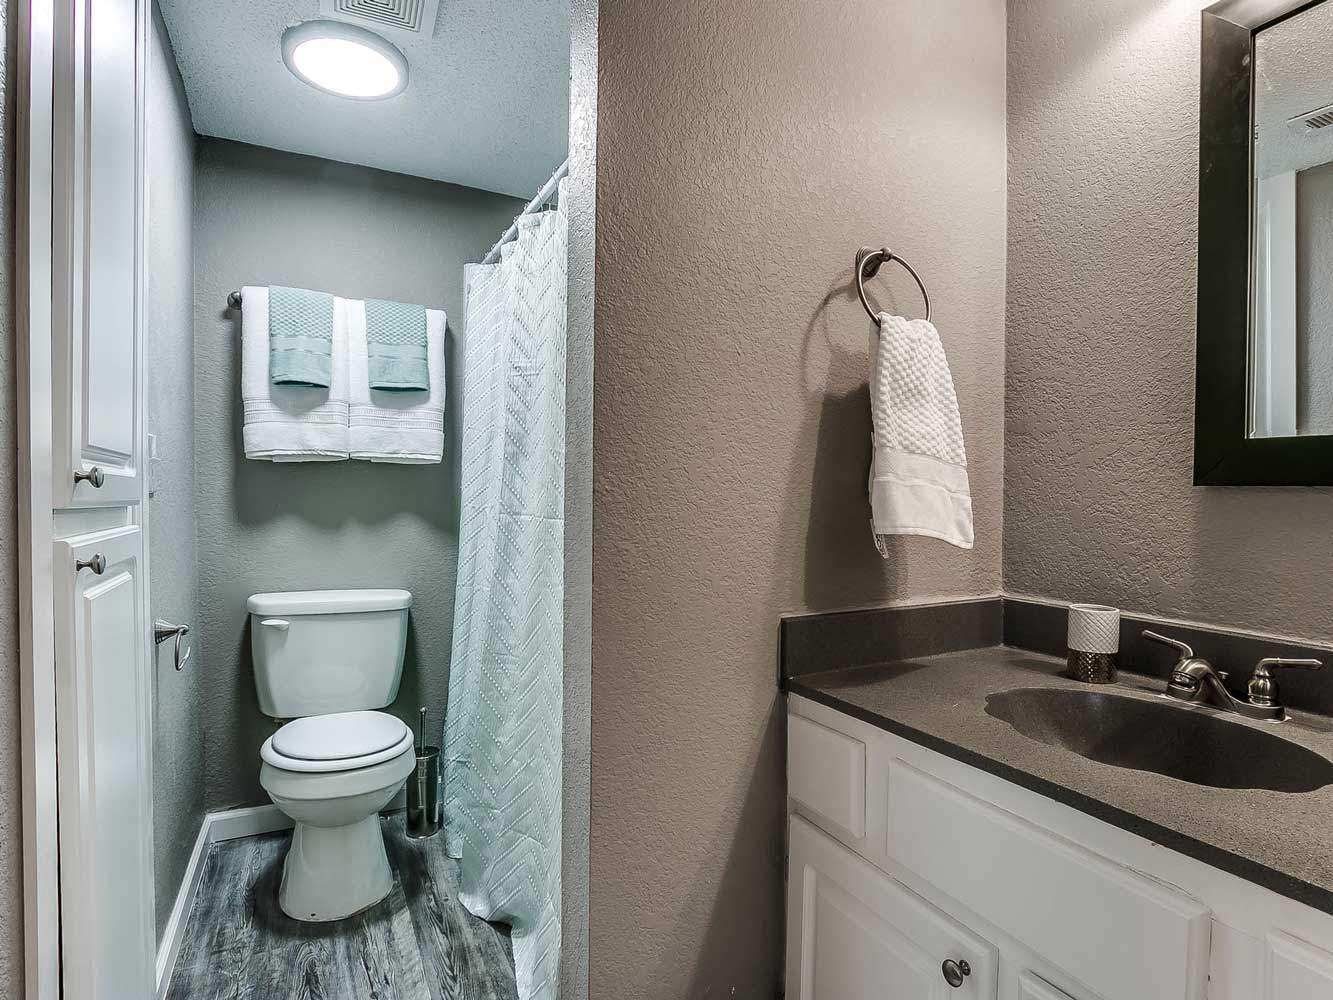 Bathroom at The Heights on Forty4 at Oklahoma City, OK